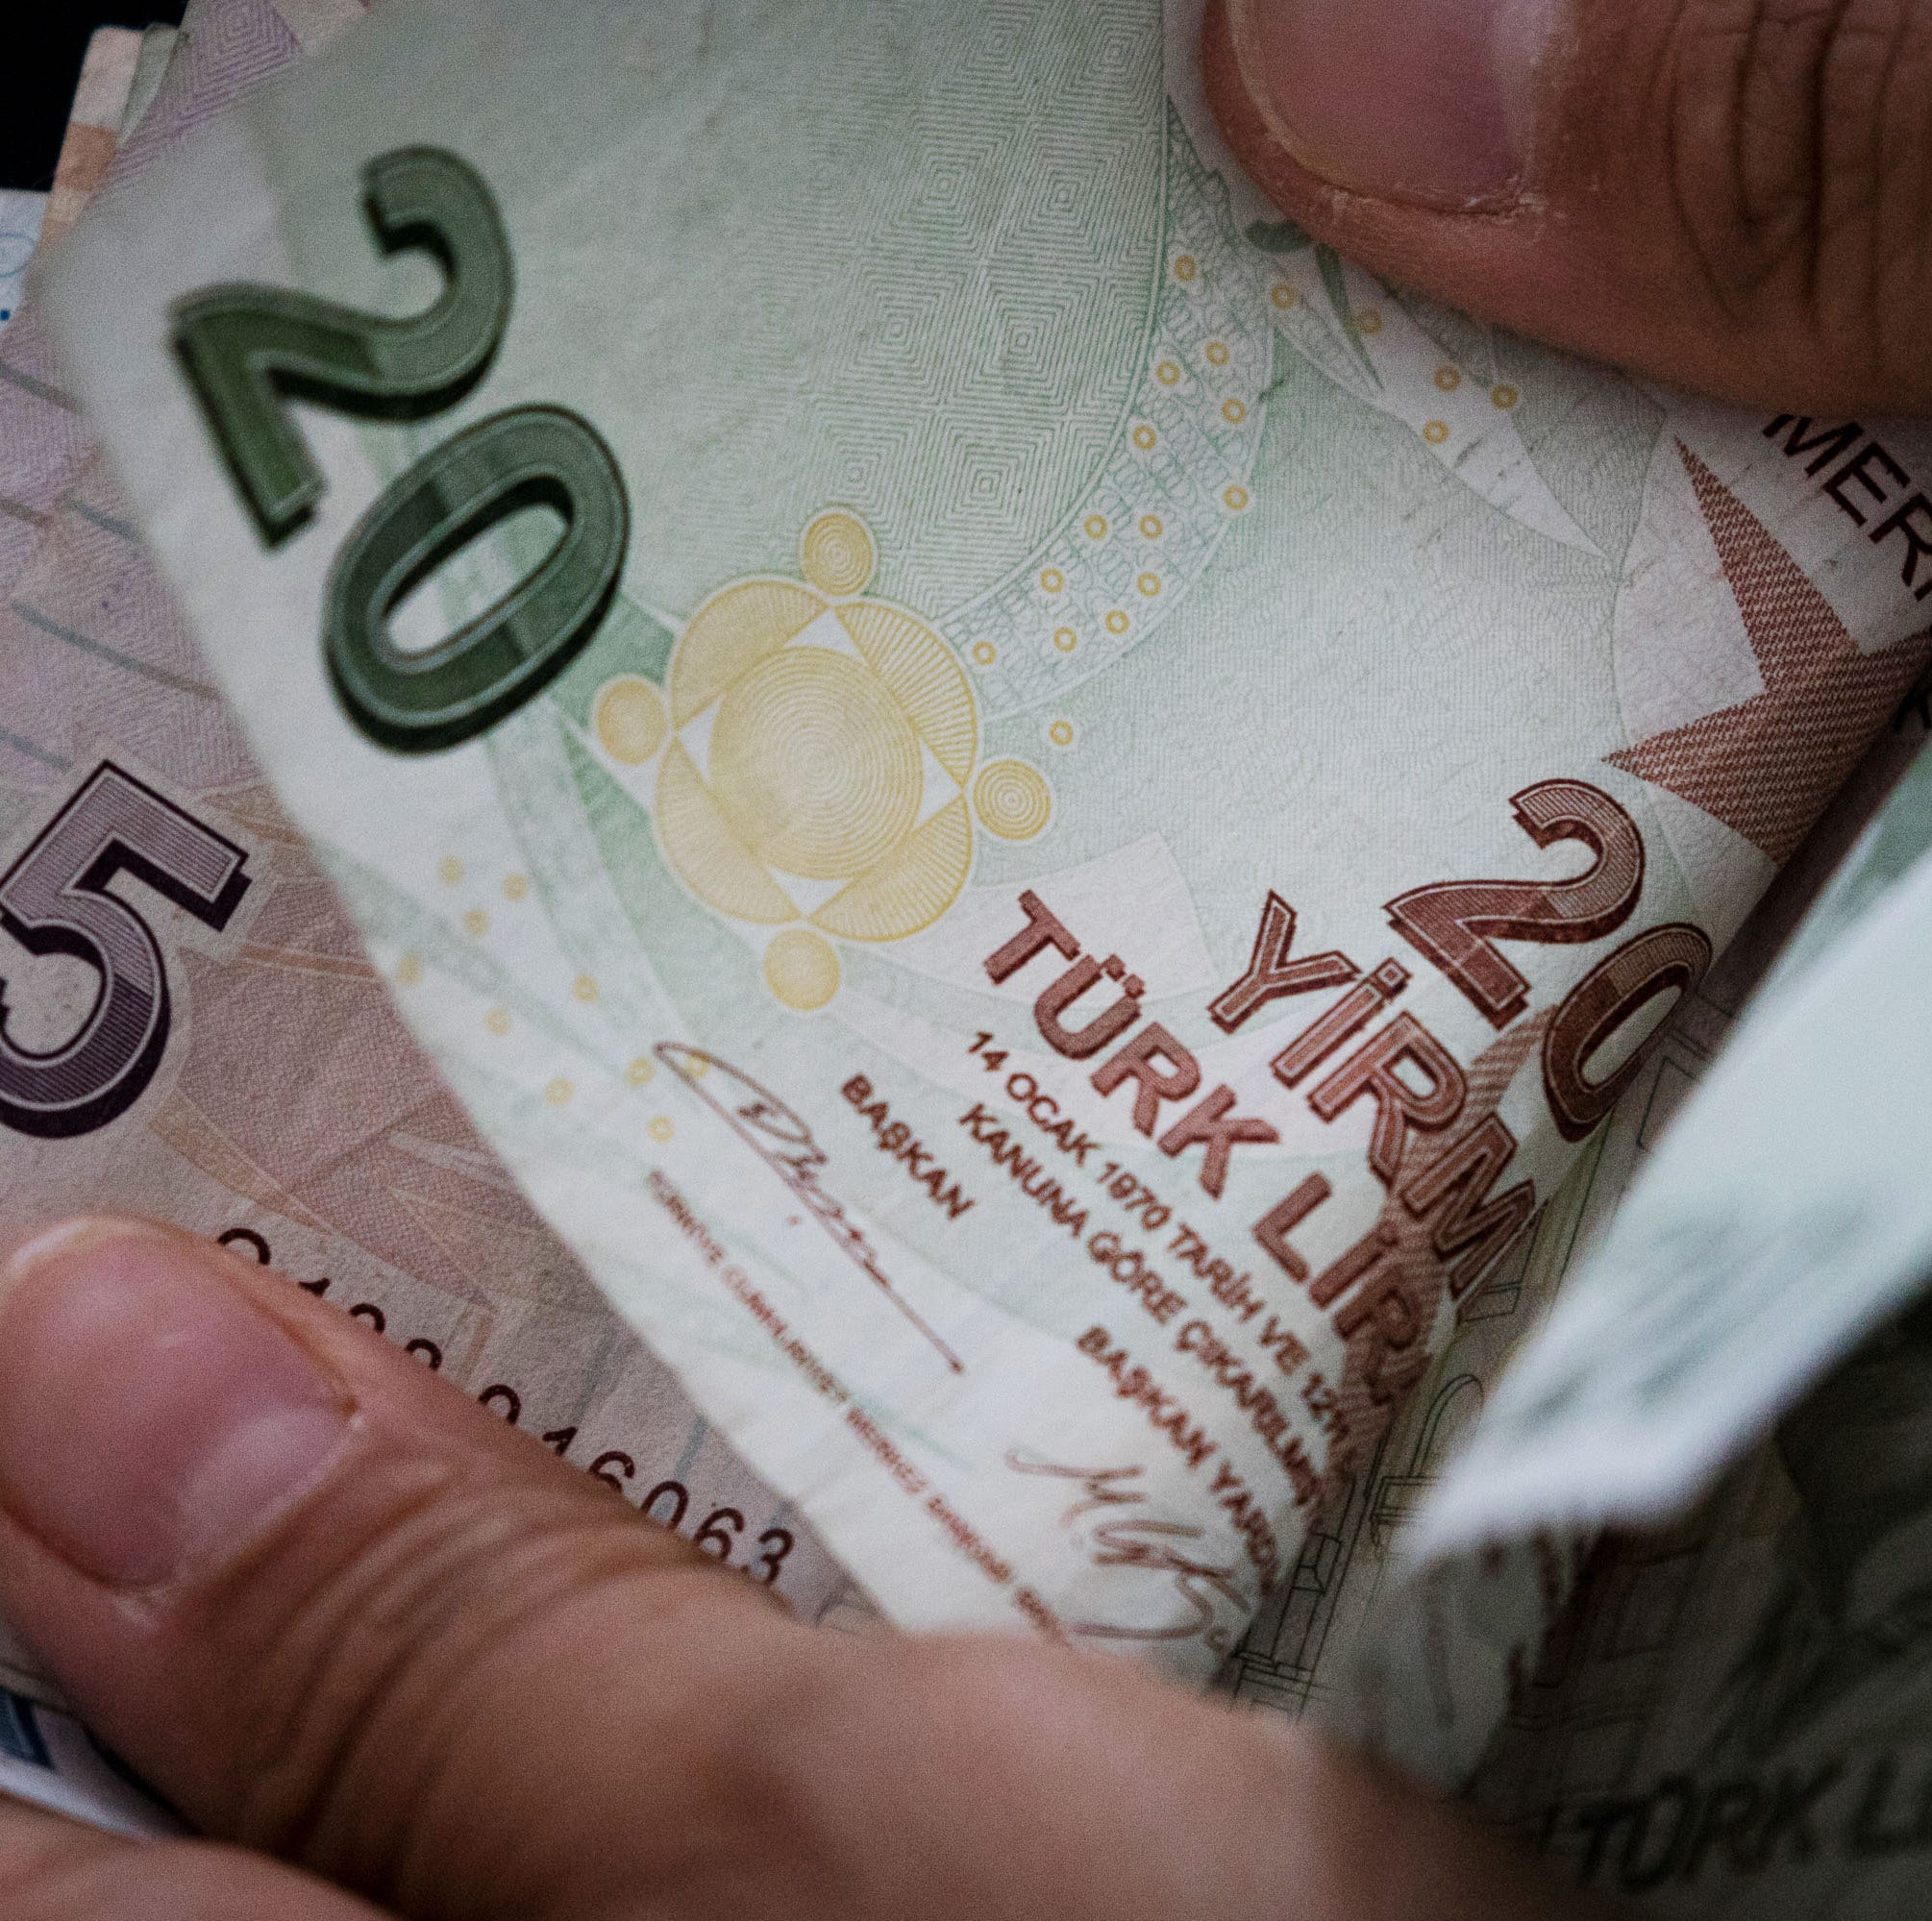 Turkey currency crisis: What it means for stock market and 401(k)s